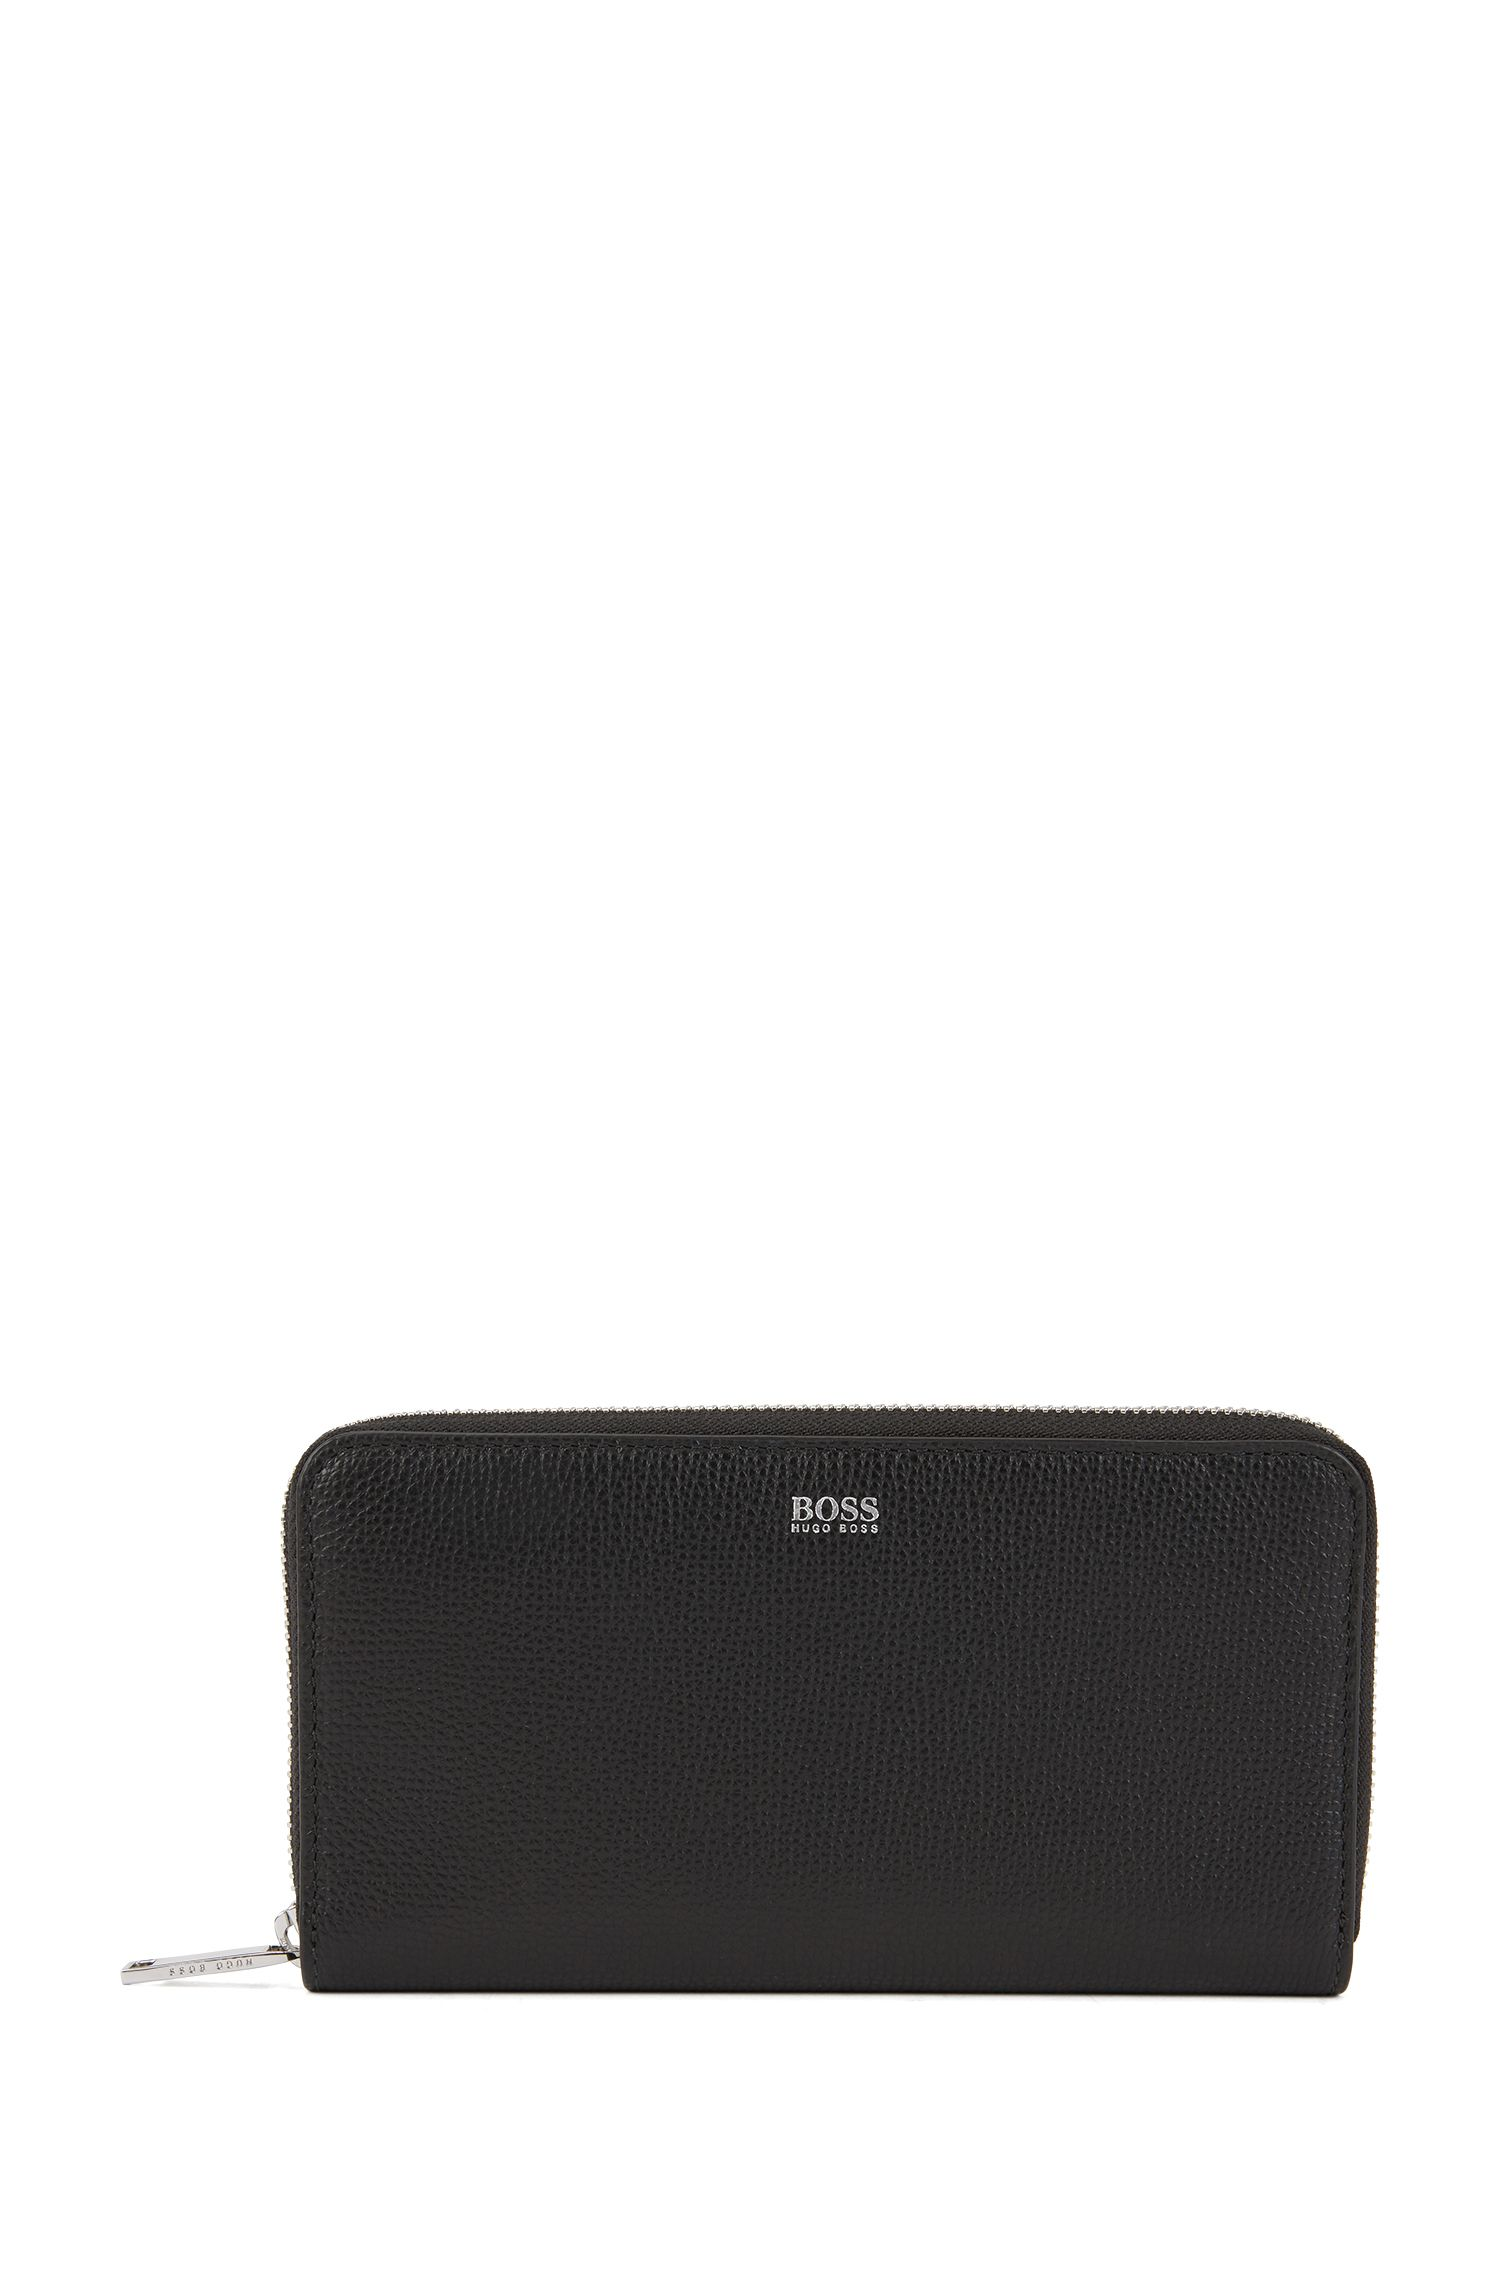 Zip-around wallet in grained Italian leather, Black